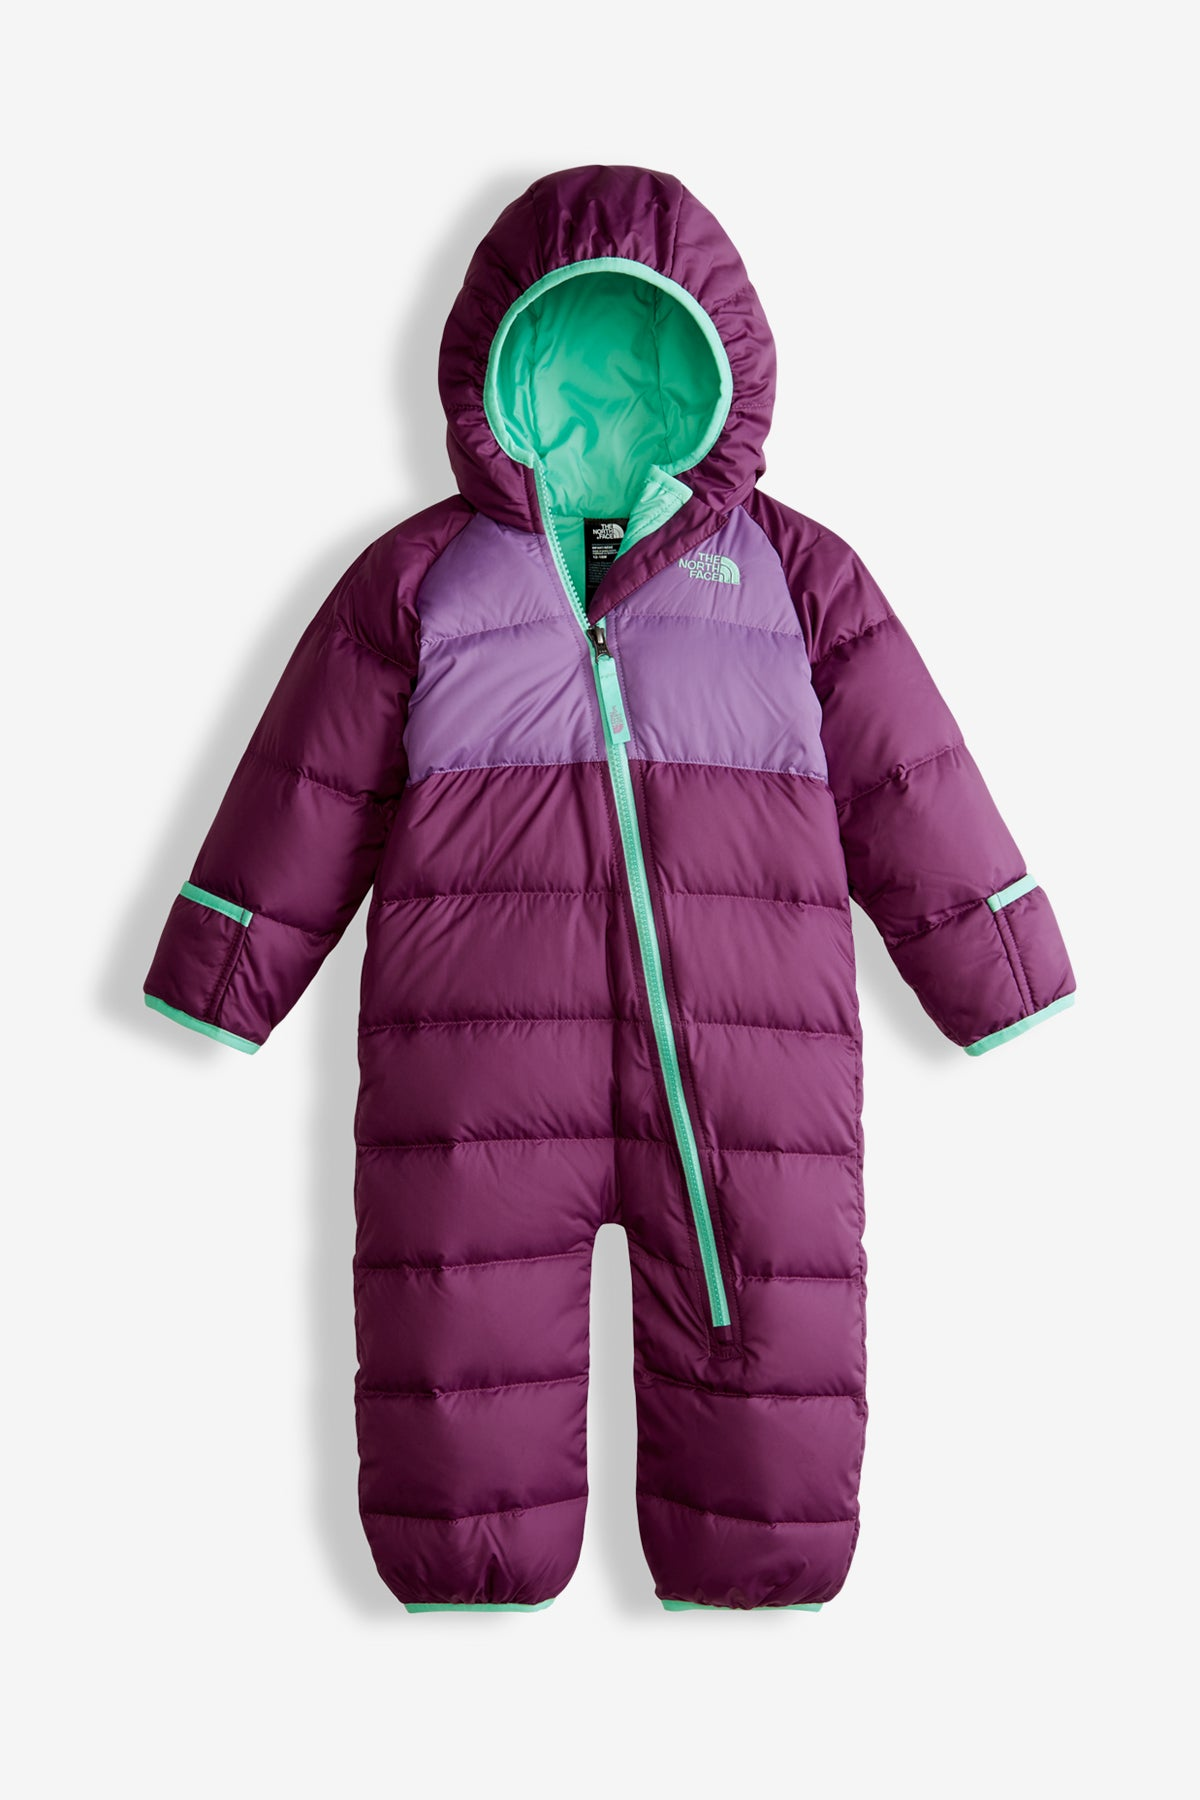 8b7f19affe82 The North Face Infant Lil  Snuggler Down Suit - Wood Violet - Mini Ruby